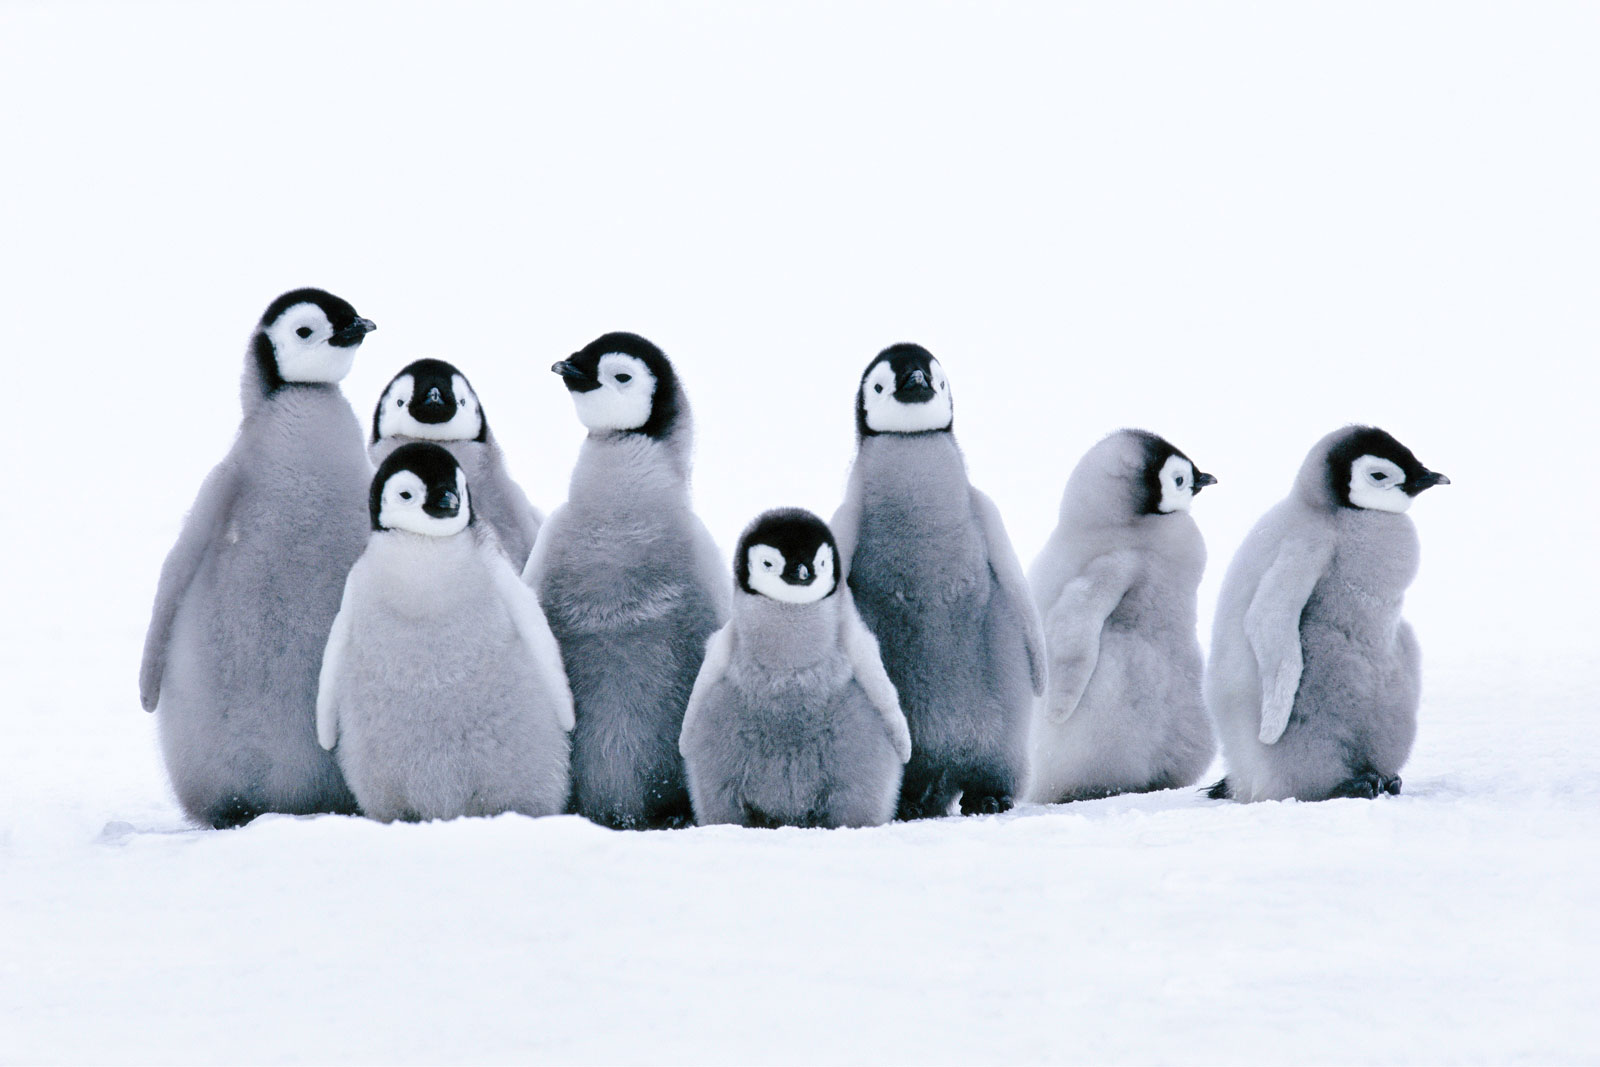 Emperor penguin chicks, Weddell Sea, Antarctica